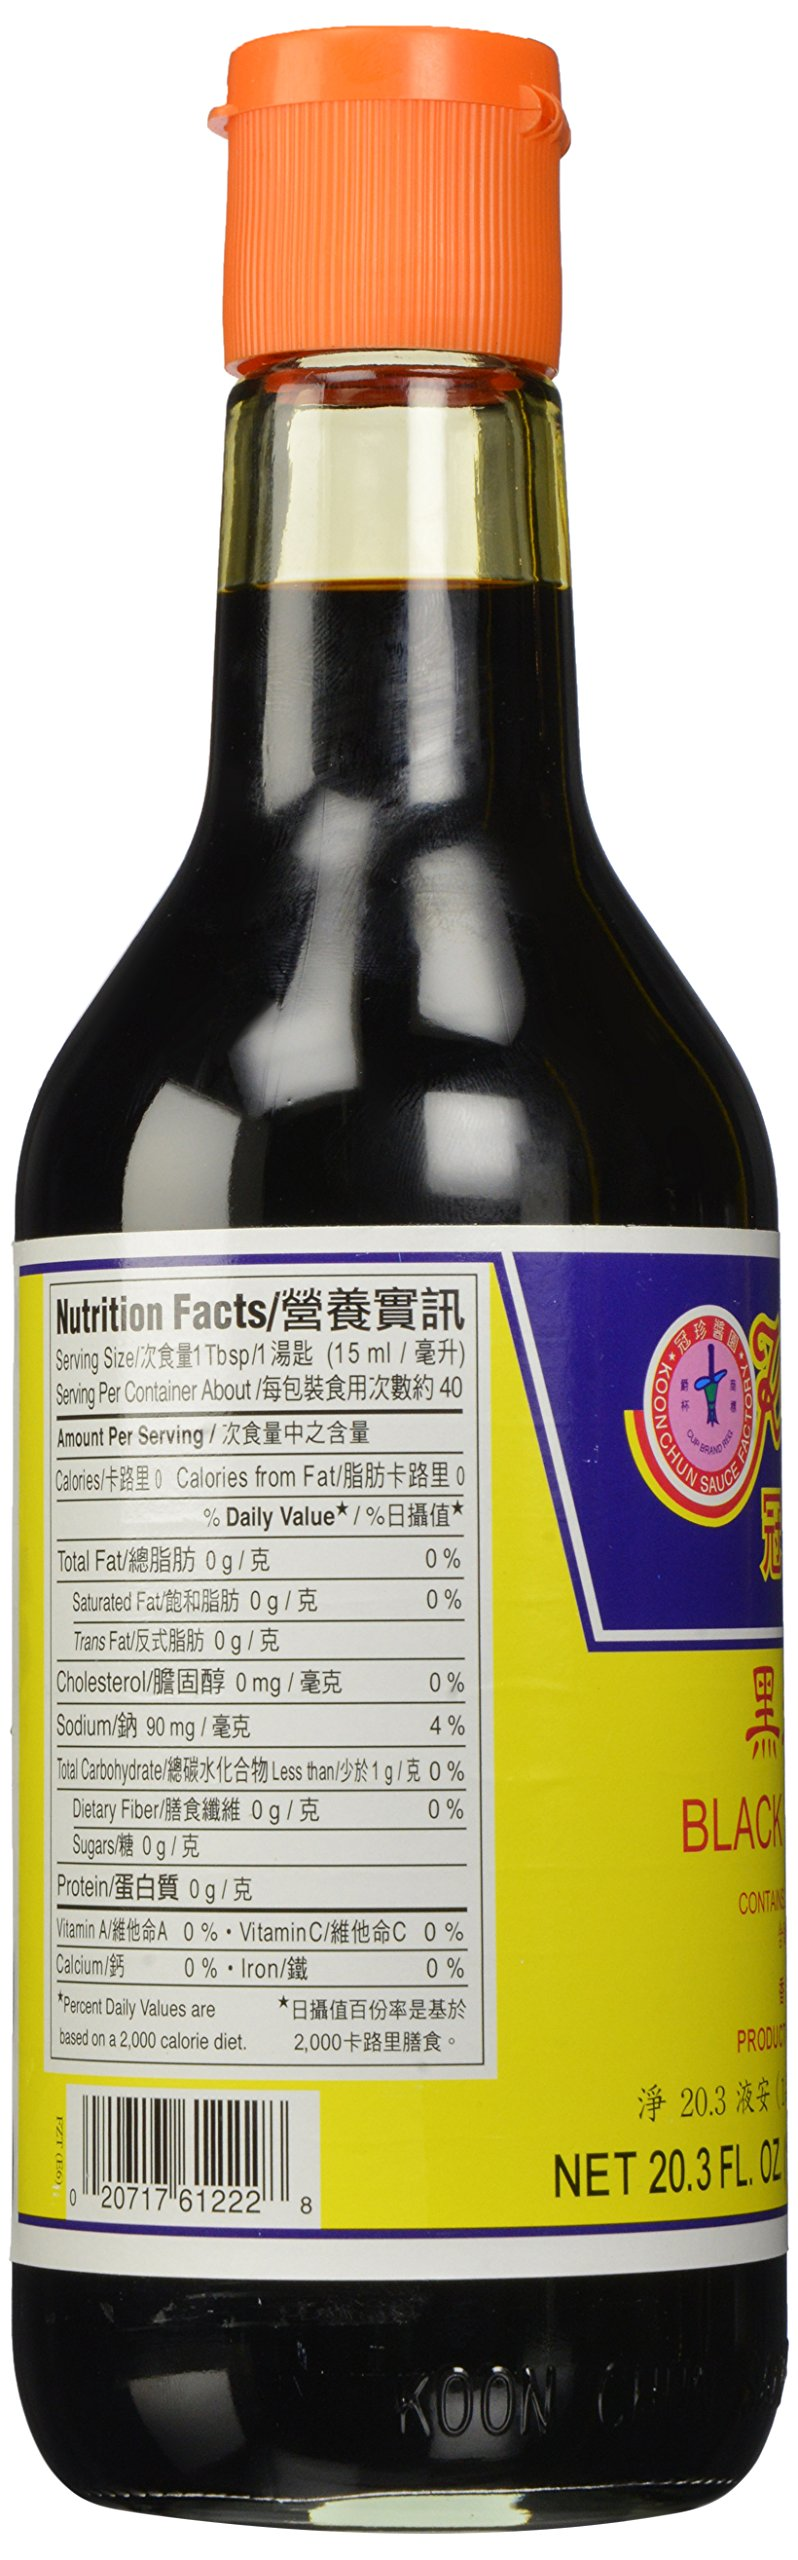 Koon Chun Black Vinegar 6 Made of fermented rice, wheat, barley, and sorghum Used as a basic ingredient in many Chinese kitchens Has a mild sweet and tart taste that will attribute a sharp full flavor to any dish